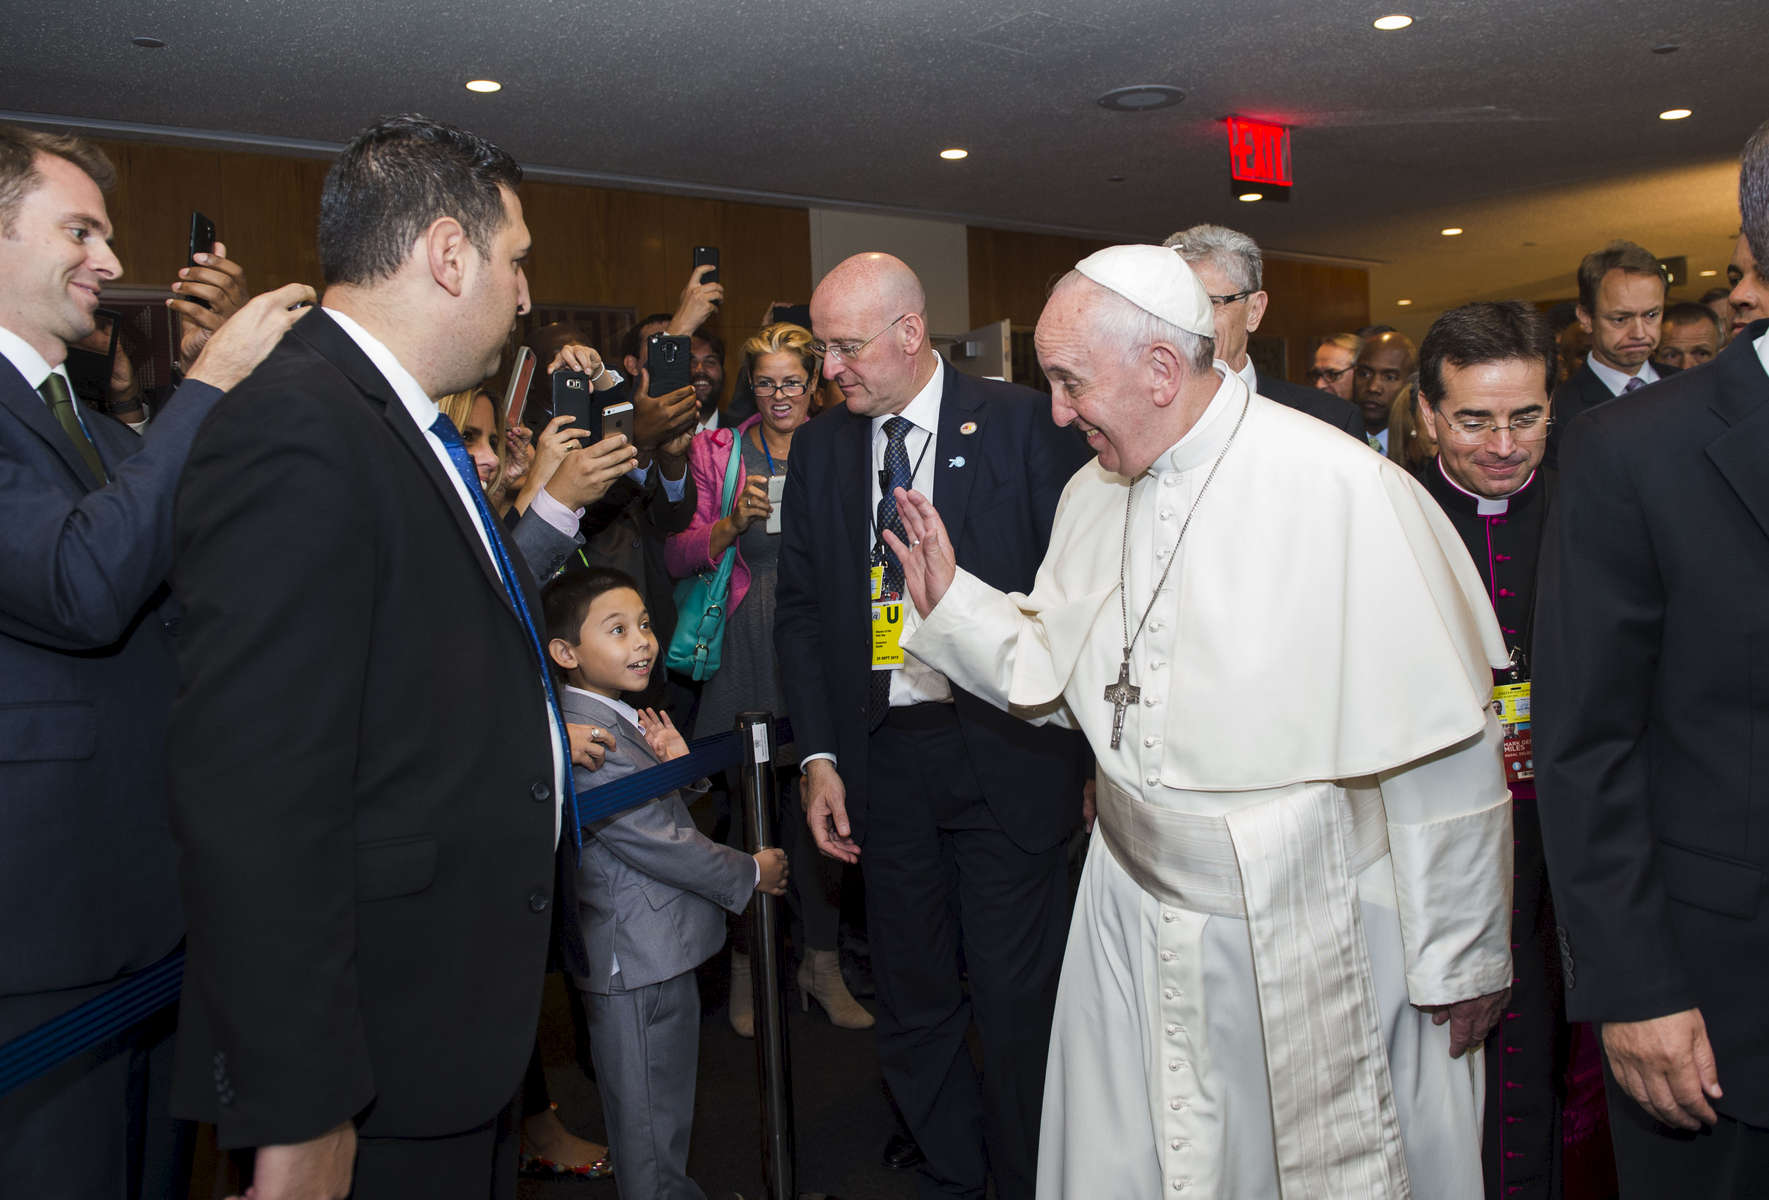 Pope Francis waves to Keanu Usamanont, 7, son of UN employee Jennifer Longo during his exit from the United Nations Headquarters